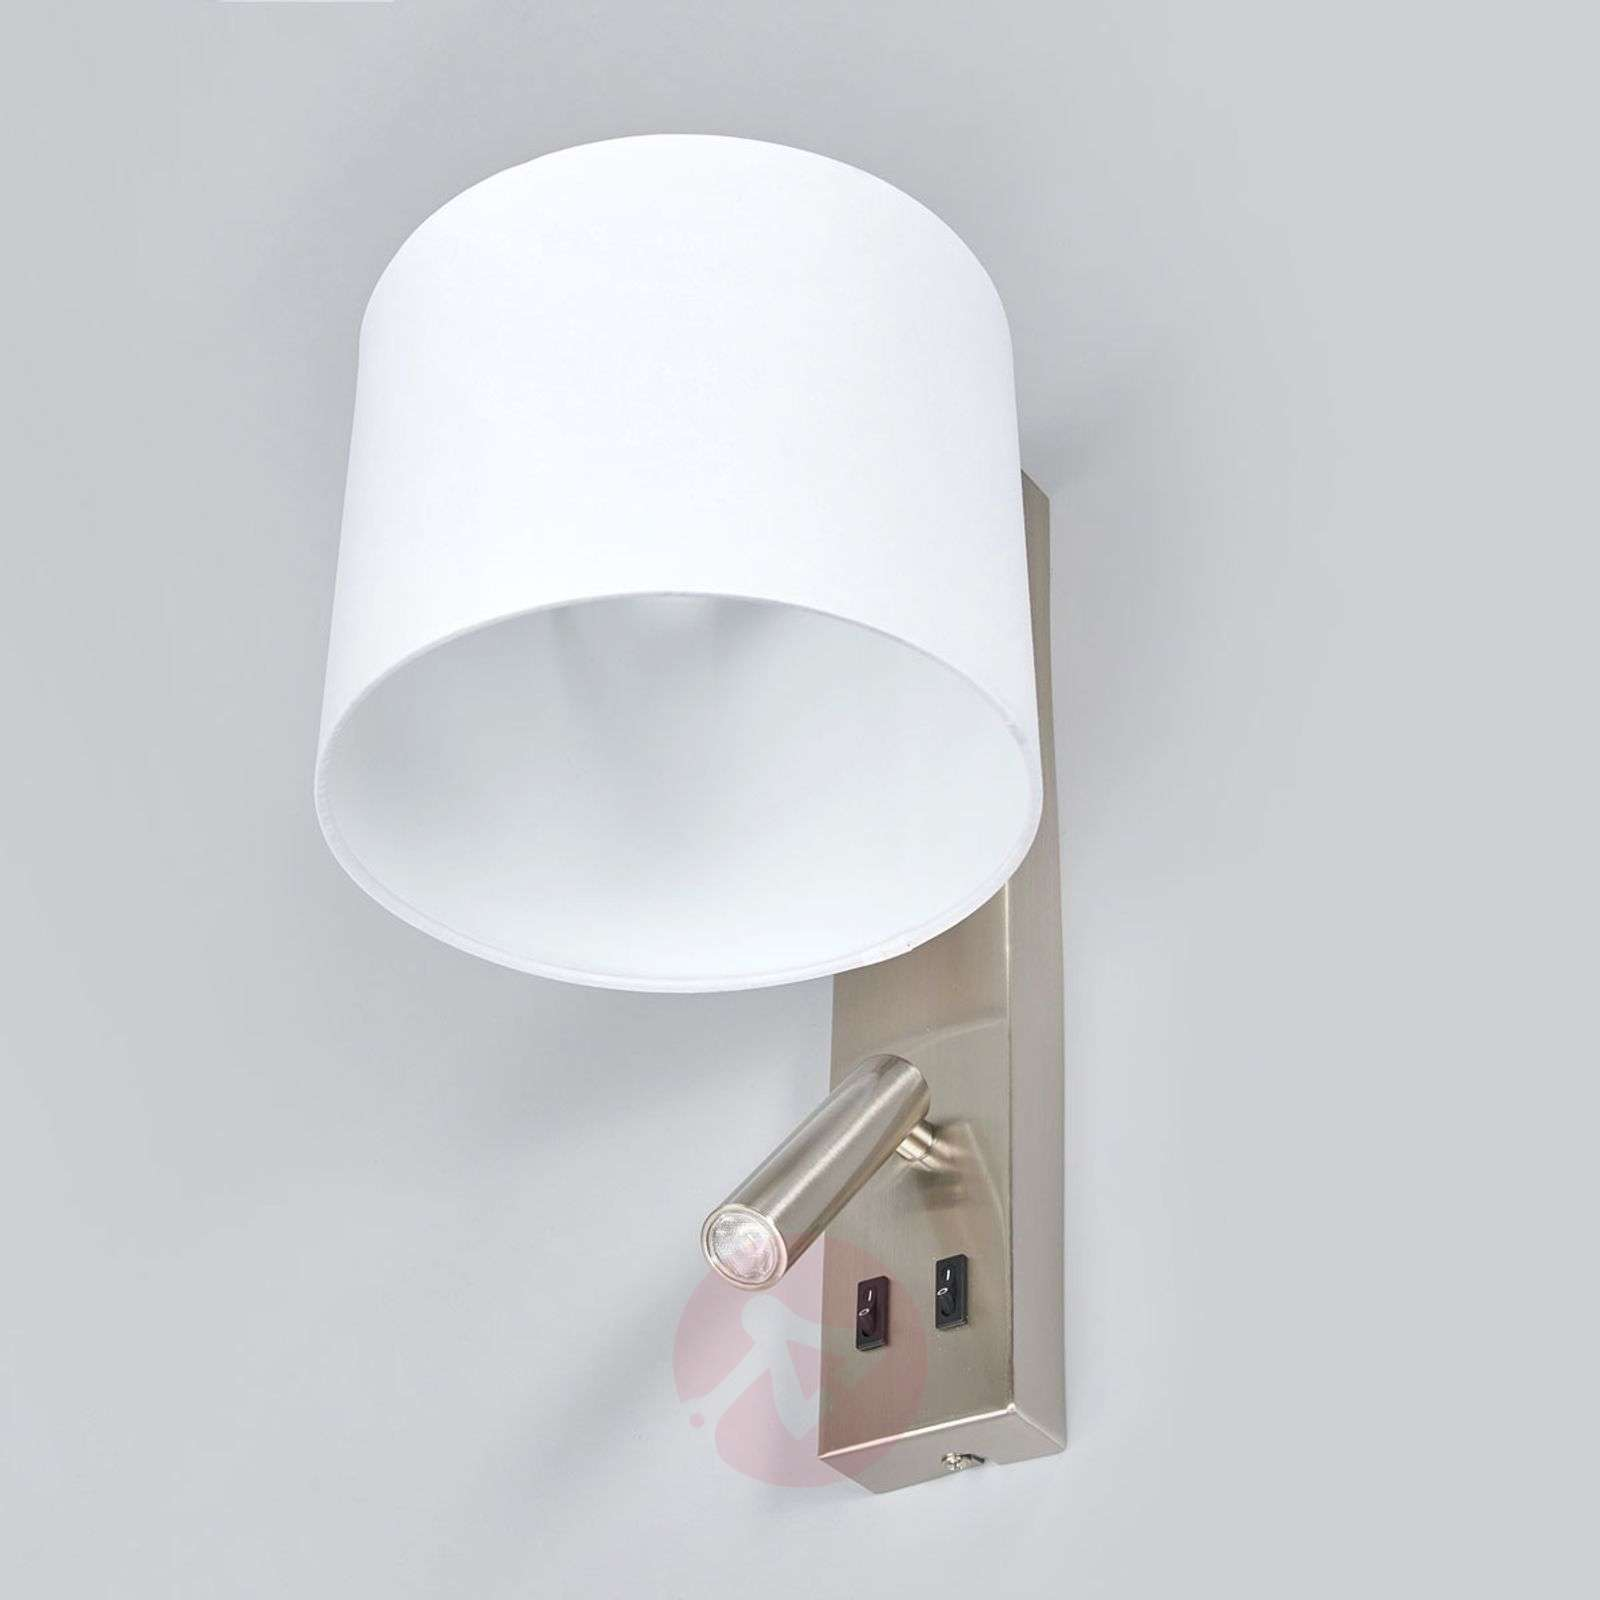 White wall lamp Mavis with LED reading light-9641099-02